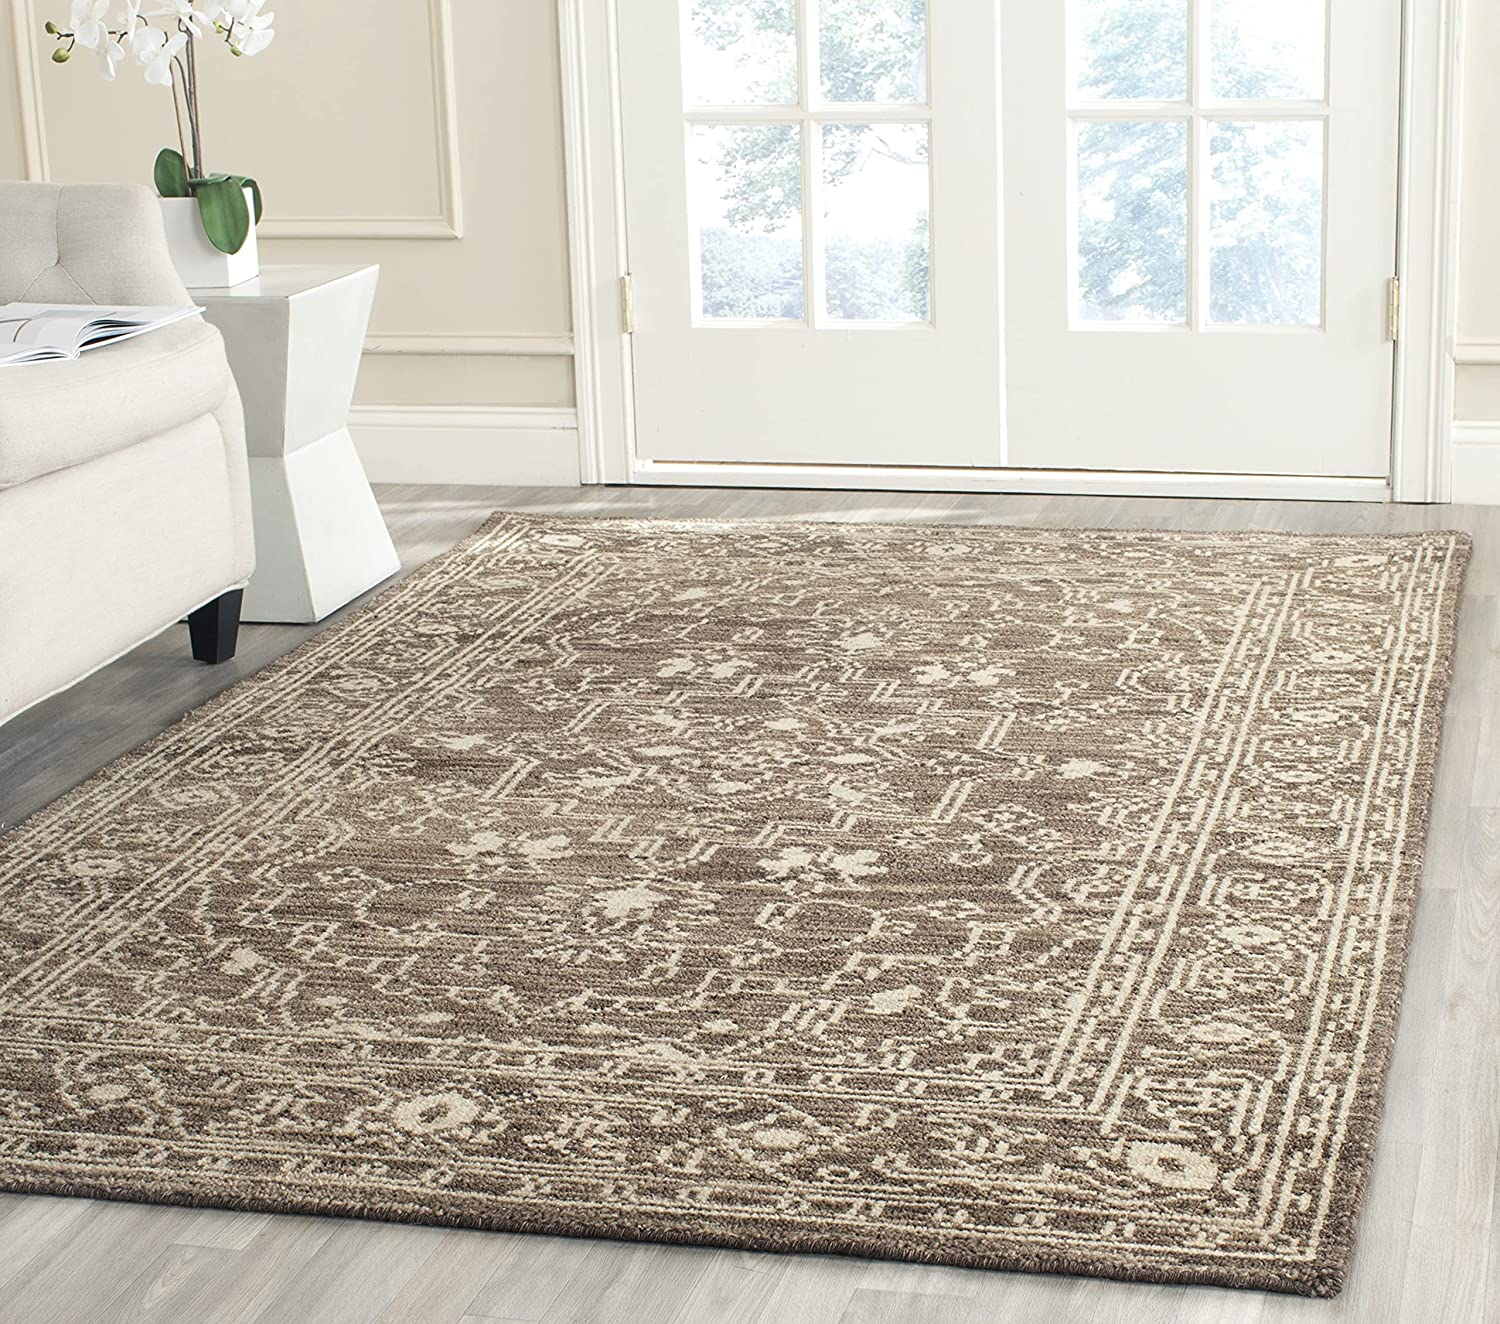 Safavieh Kenya Lowest price Wholesale challenge Collection KNY682A Hand-Knotted Premium Wool Area